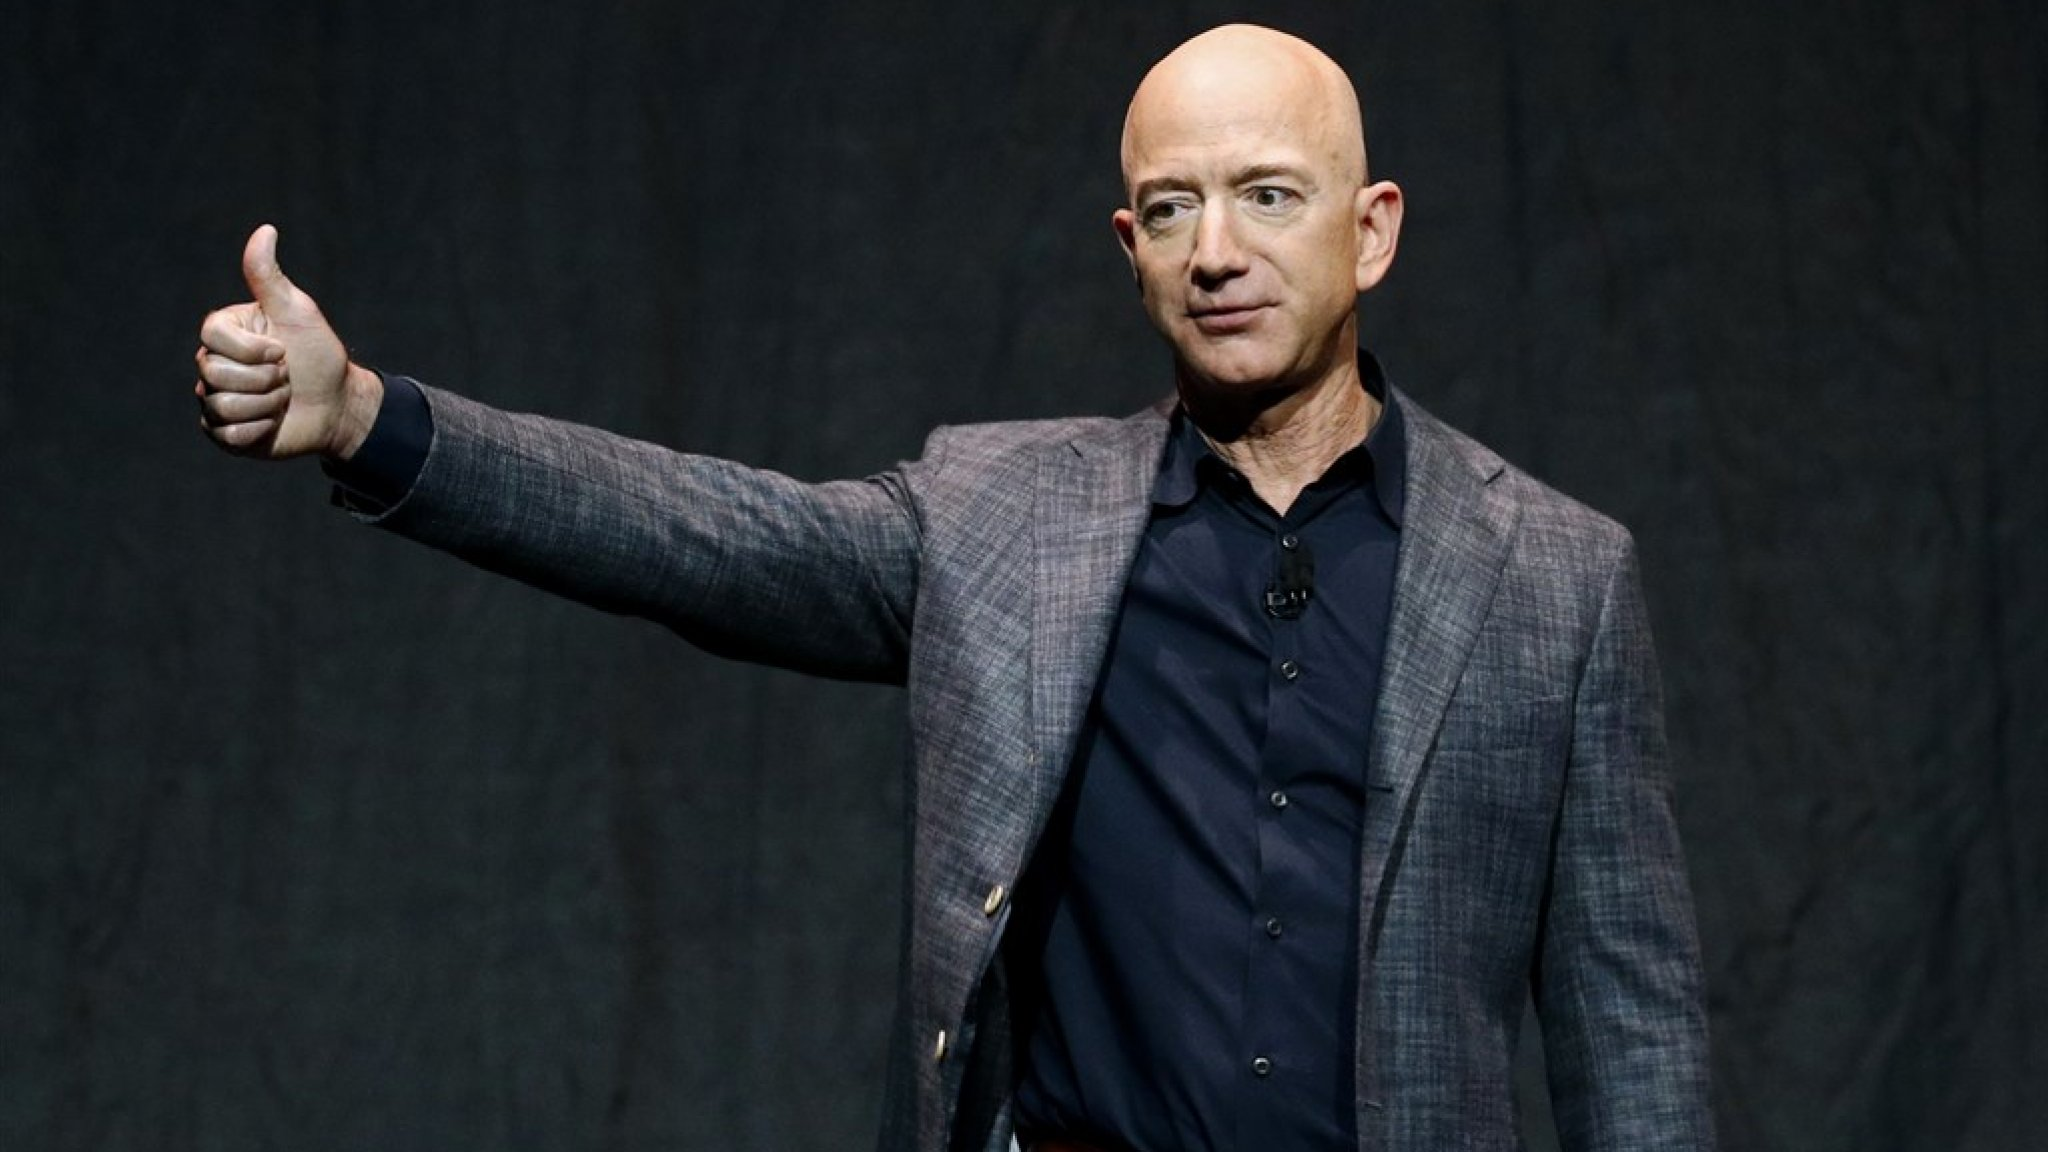 Amazon CEO 'supports raising taxes for companies'